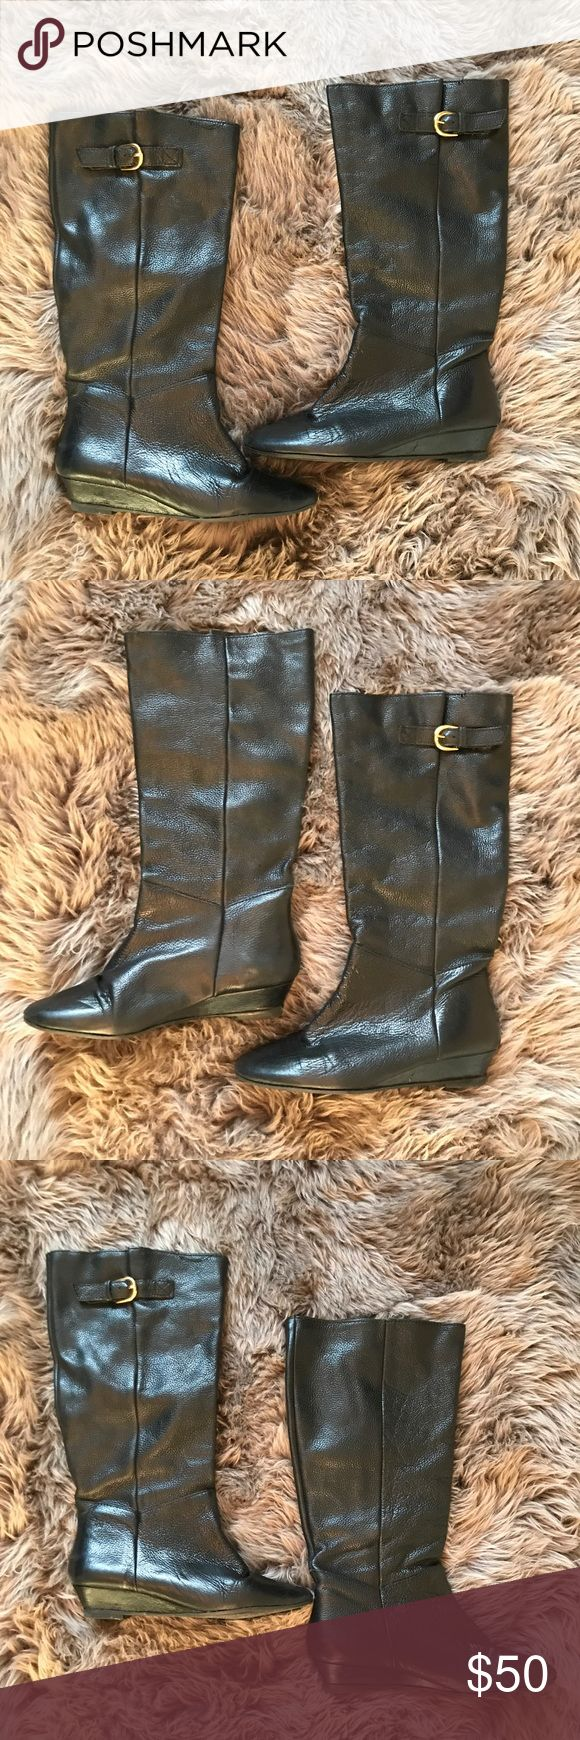 Steve Madden Intyce Leather Boots These Steve Madden Intyce Leather Boots are Black in color. Have slight wedge to heal. Perfect for Fall. Lightly used, in great condition. Size: 8 Steve Madden Shoes Heeled Boots